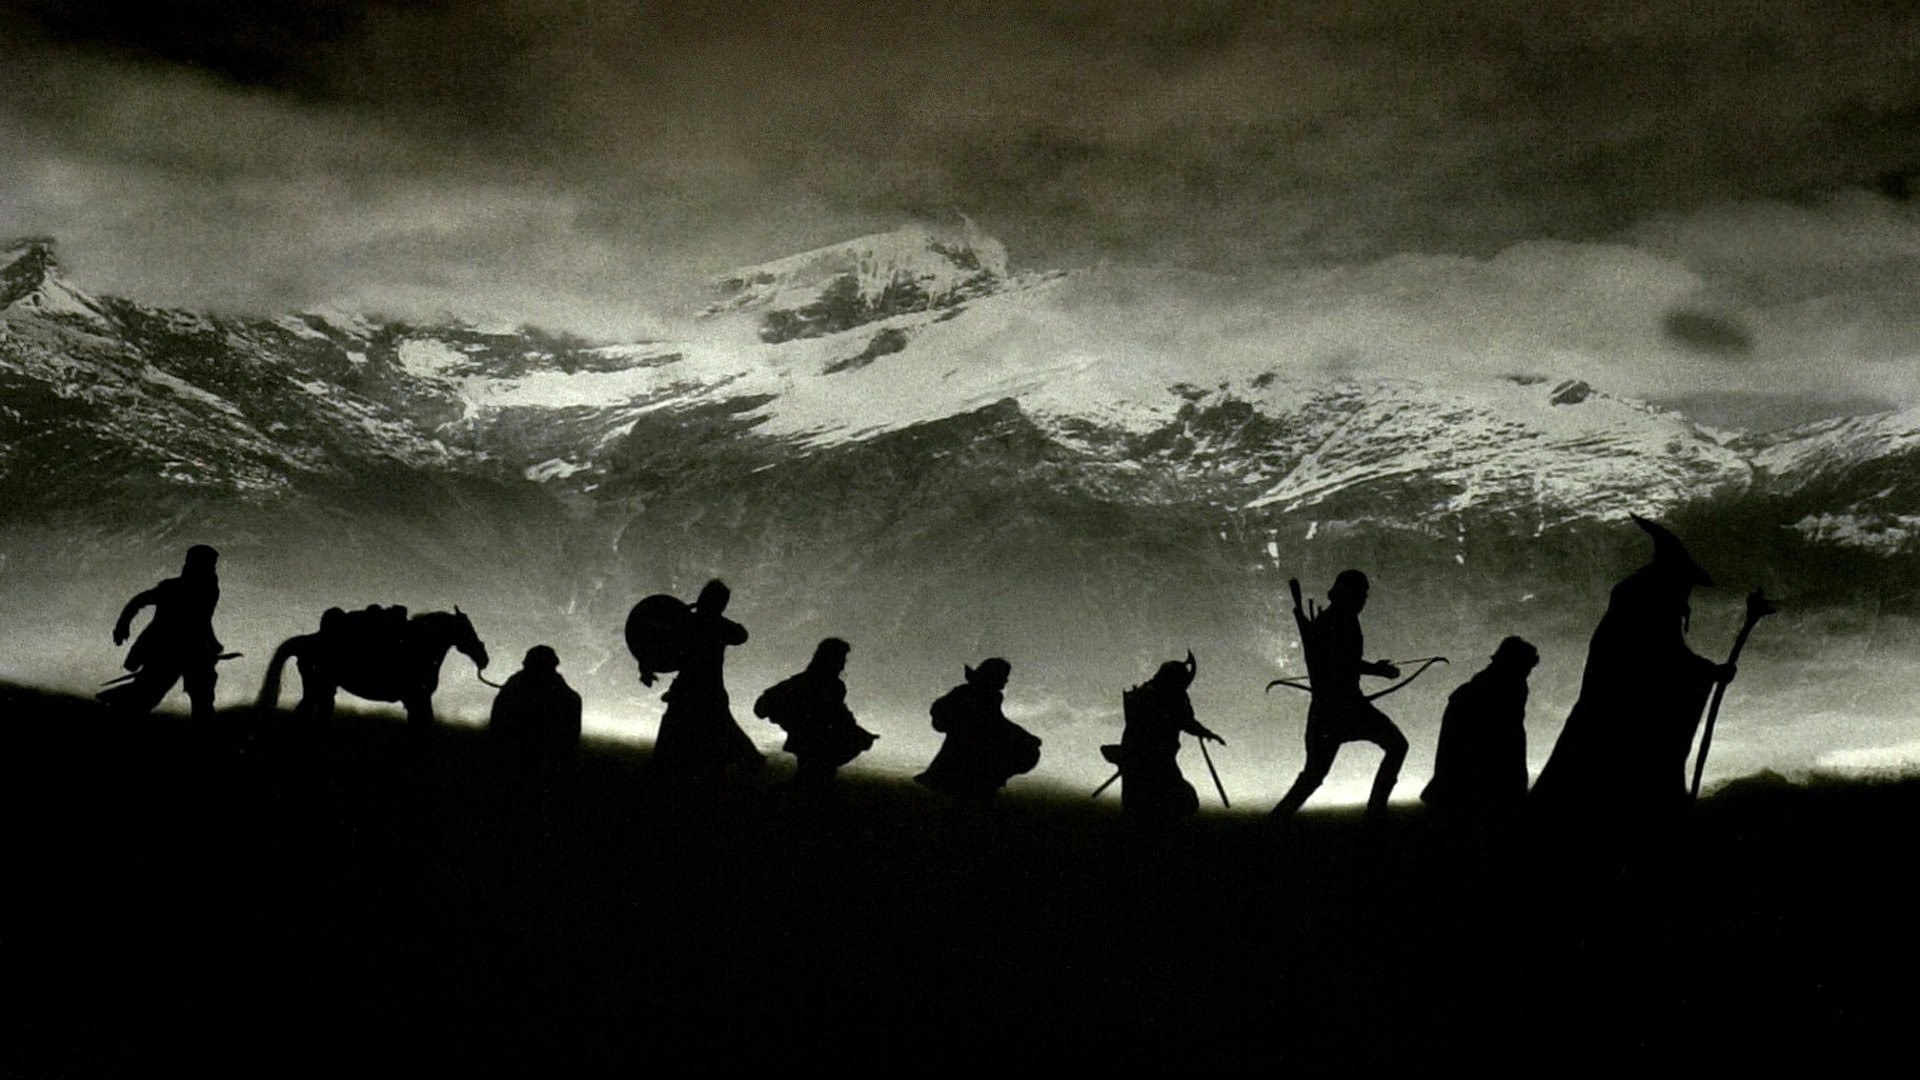 Lord Of The Rings Backgrounds on Wallpapers Vista